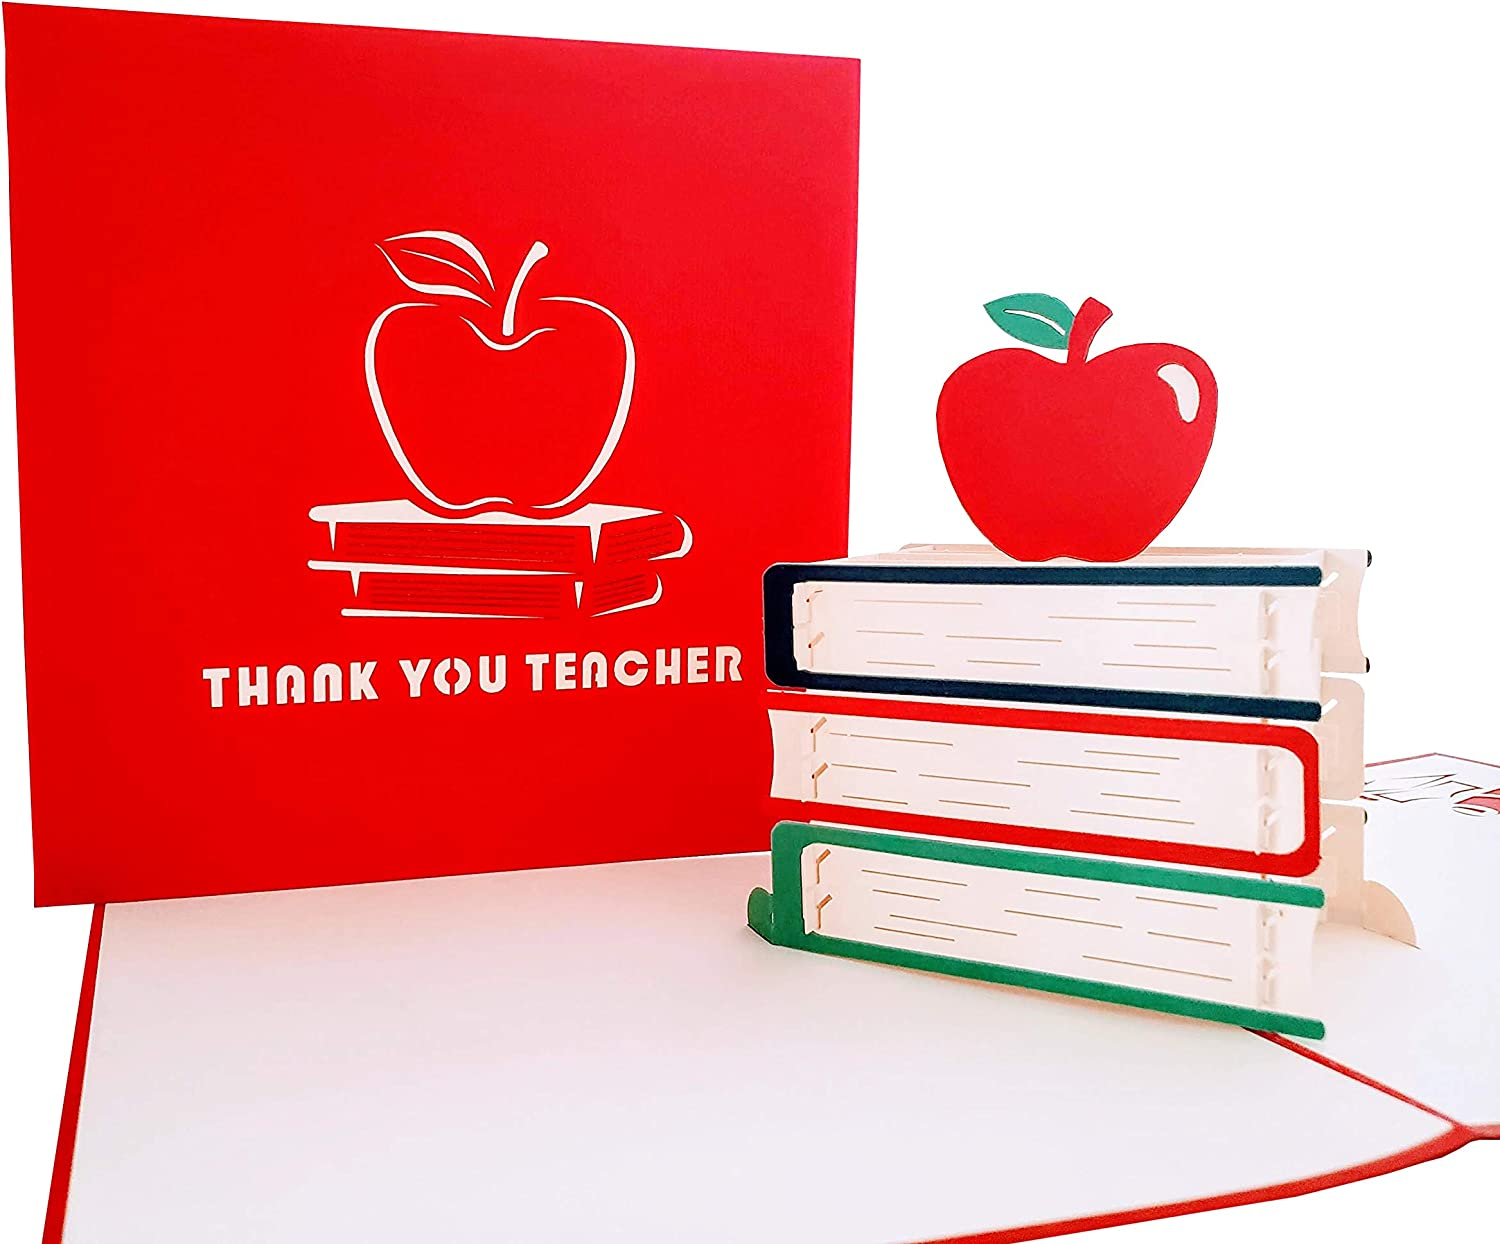 iGifts And Cards Awesome Thank YouTeacher3D Pop Up Greeting Card - Appreciation, Book, Wonderful, Happy, Unique, Cool, Apple, Fun, Blank, School, Gift, Gratitud, Caring, Thanks